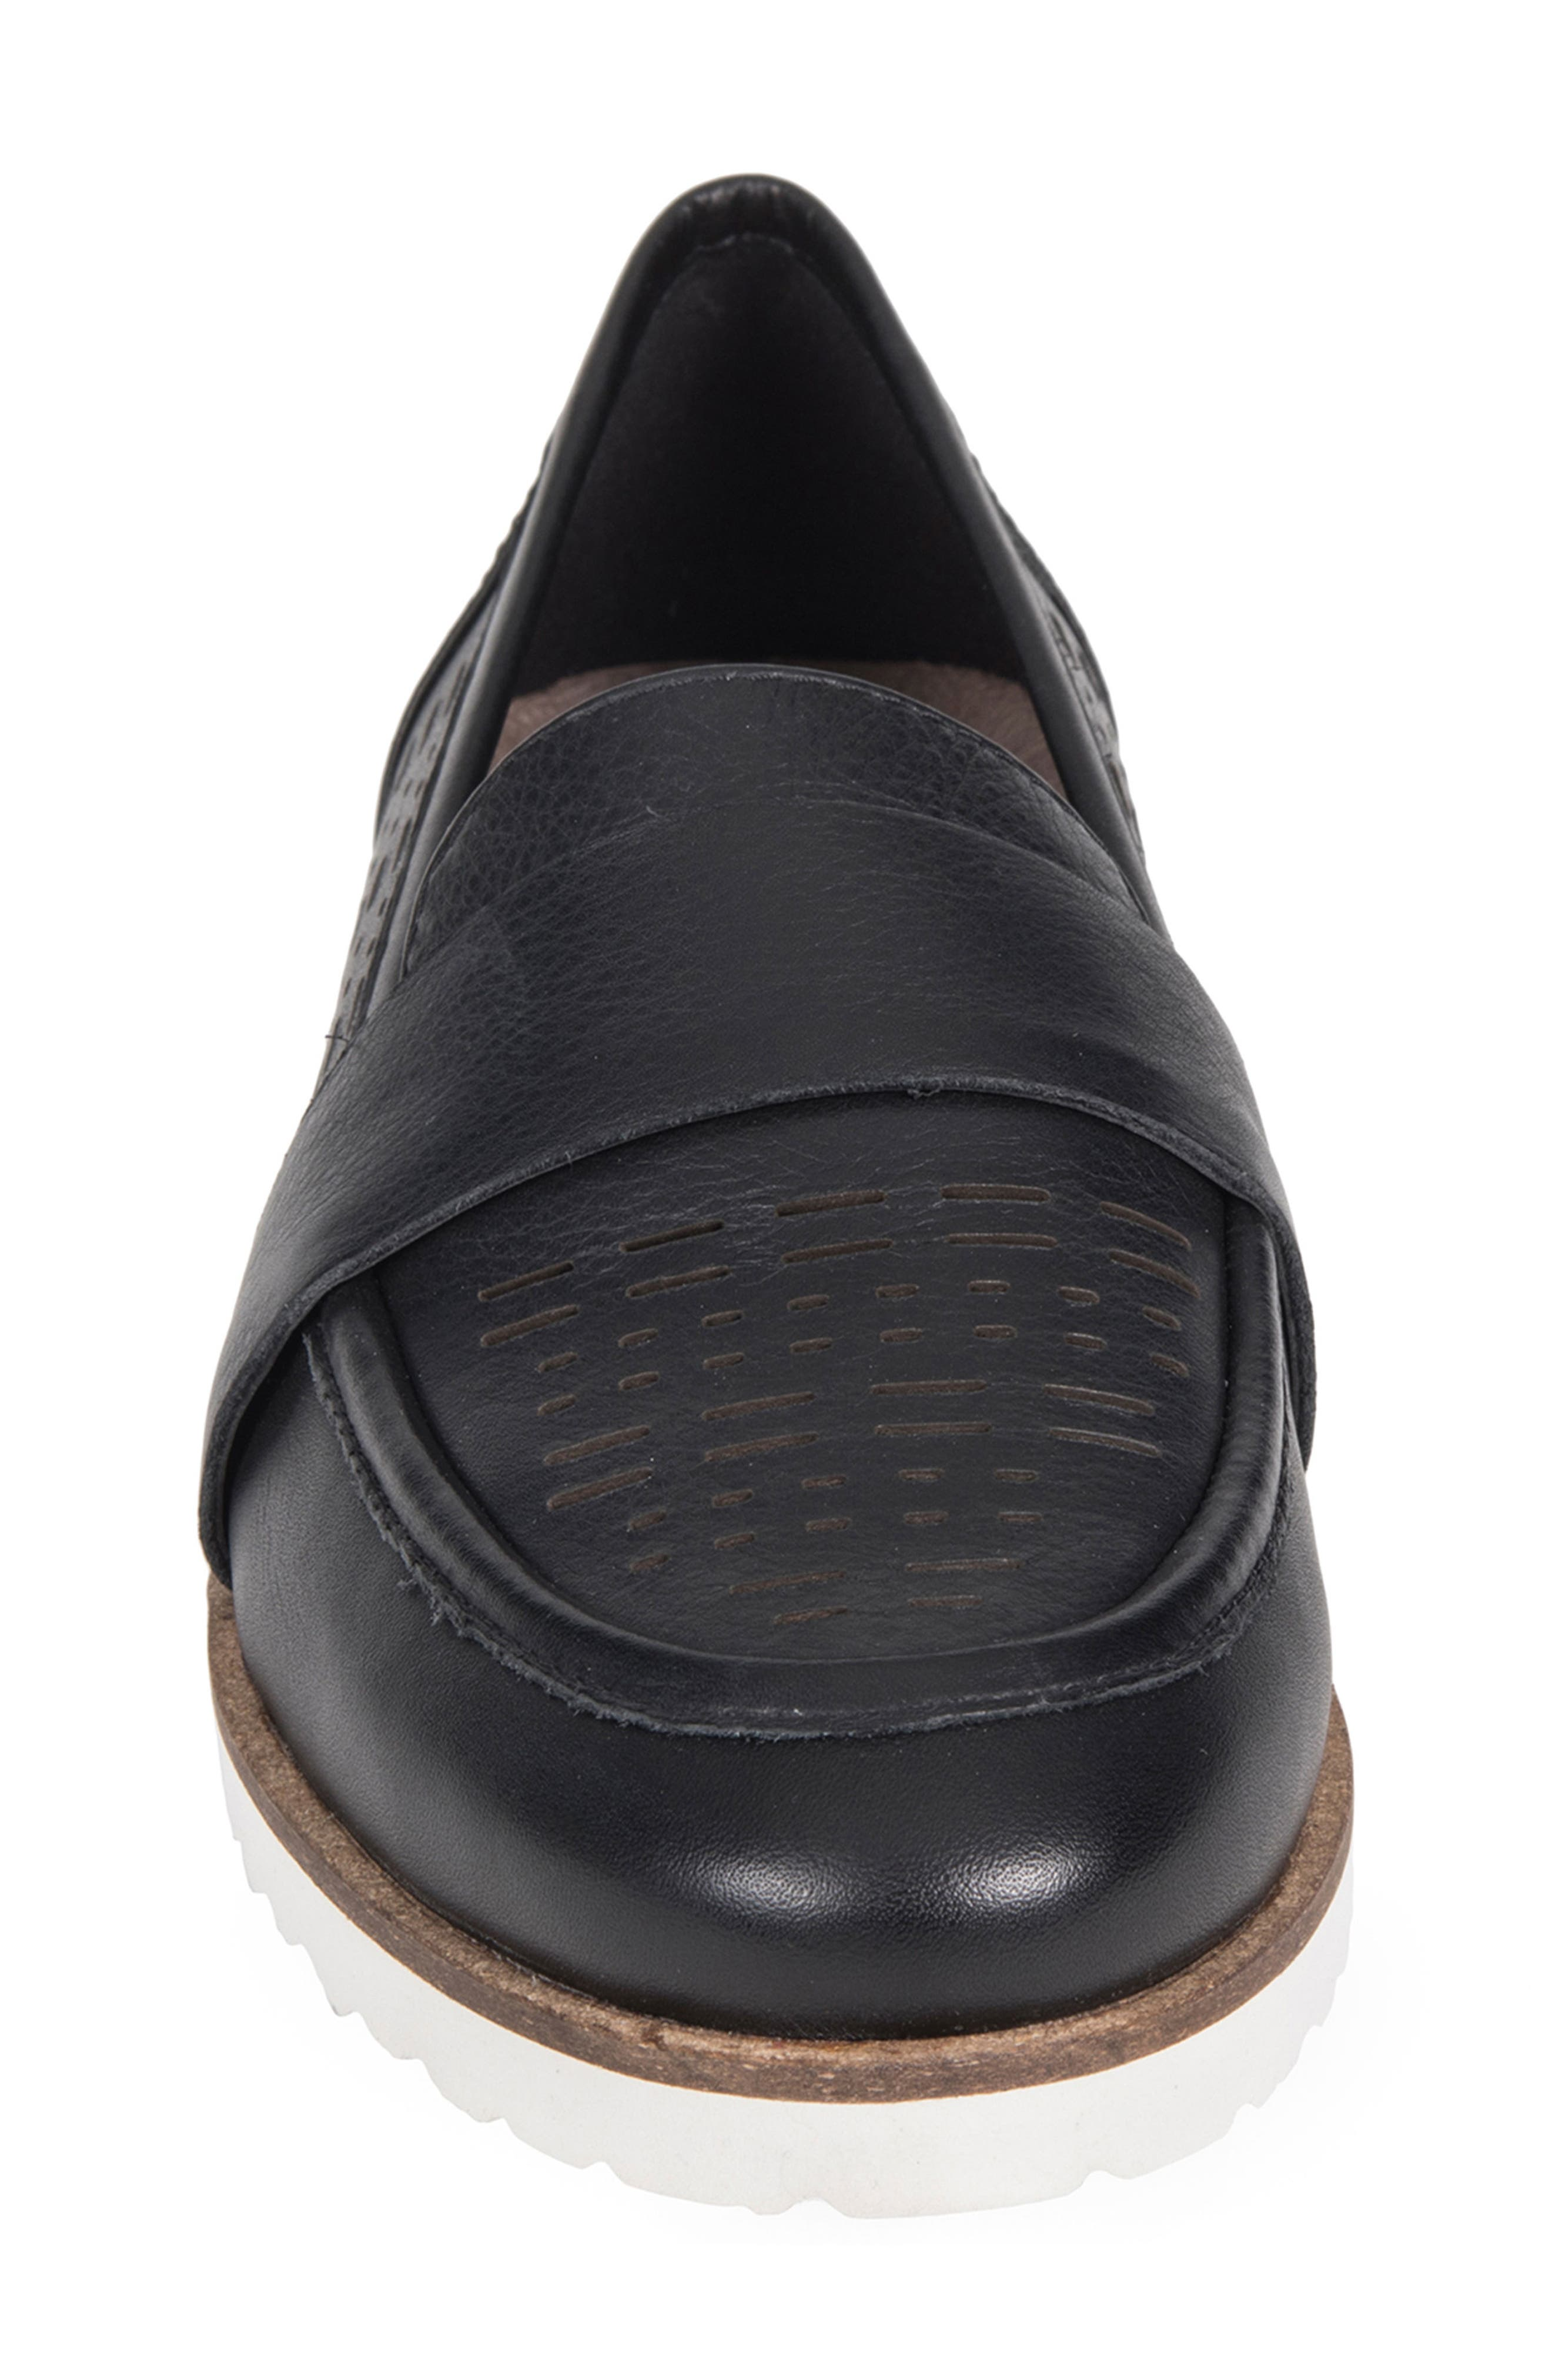 Masio Loafer,                             Alternate thumbnail 4, color,                             001